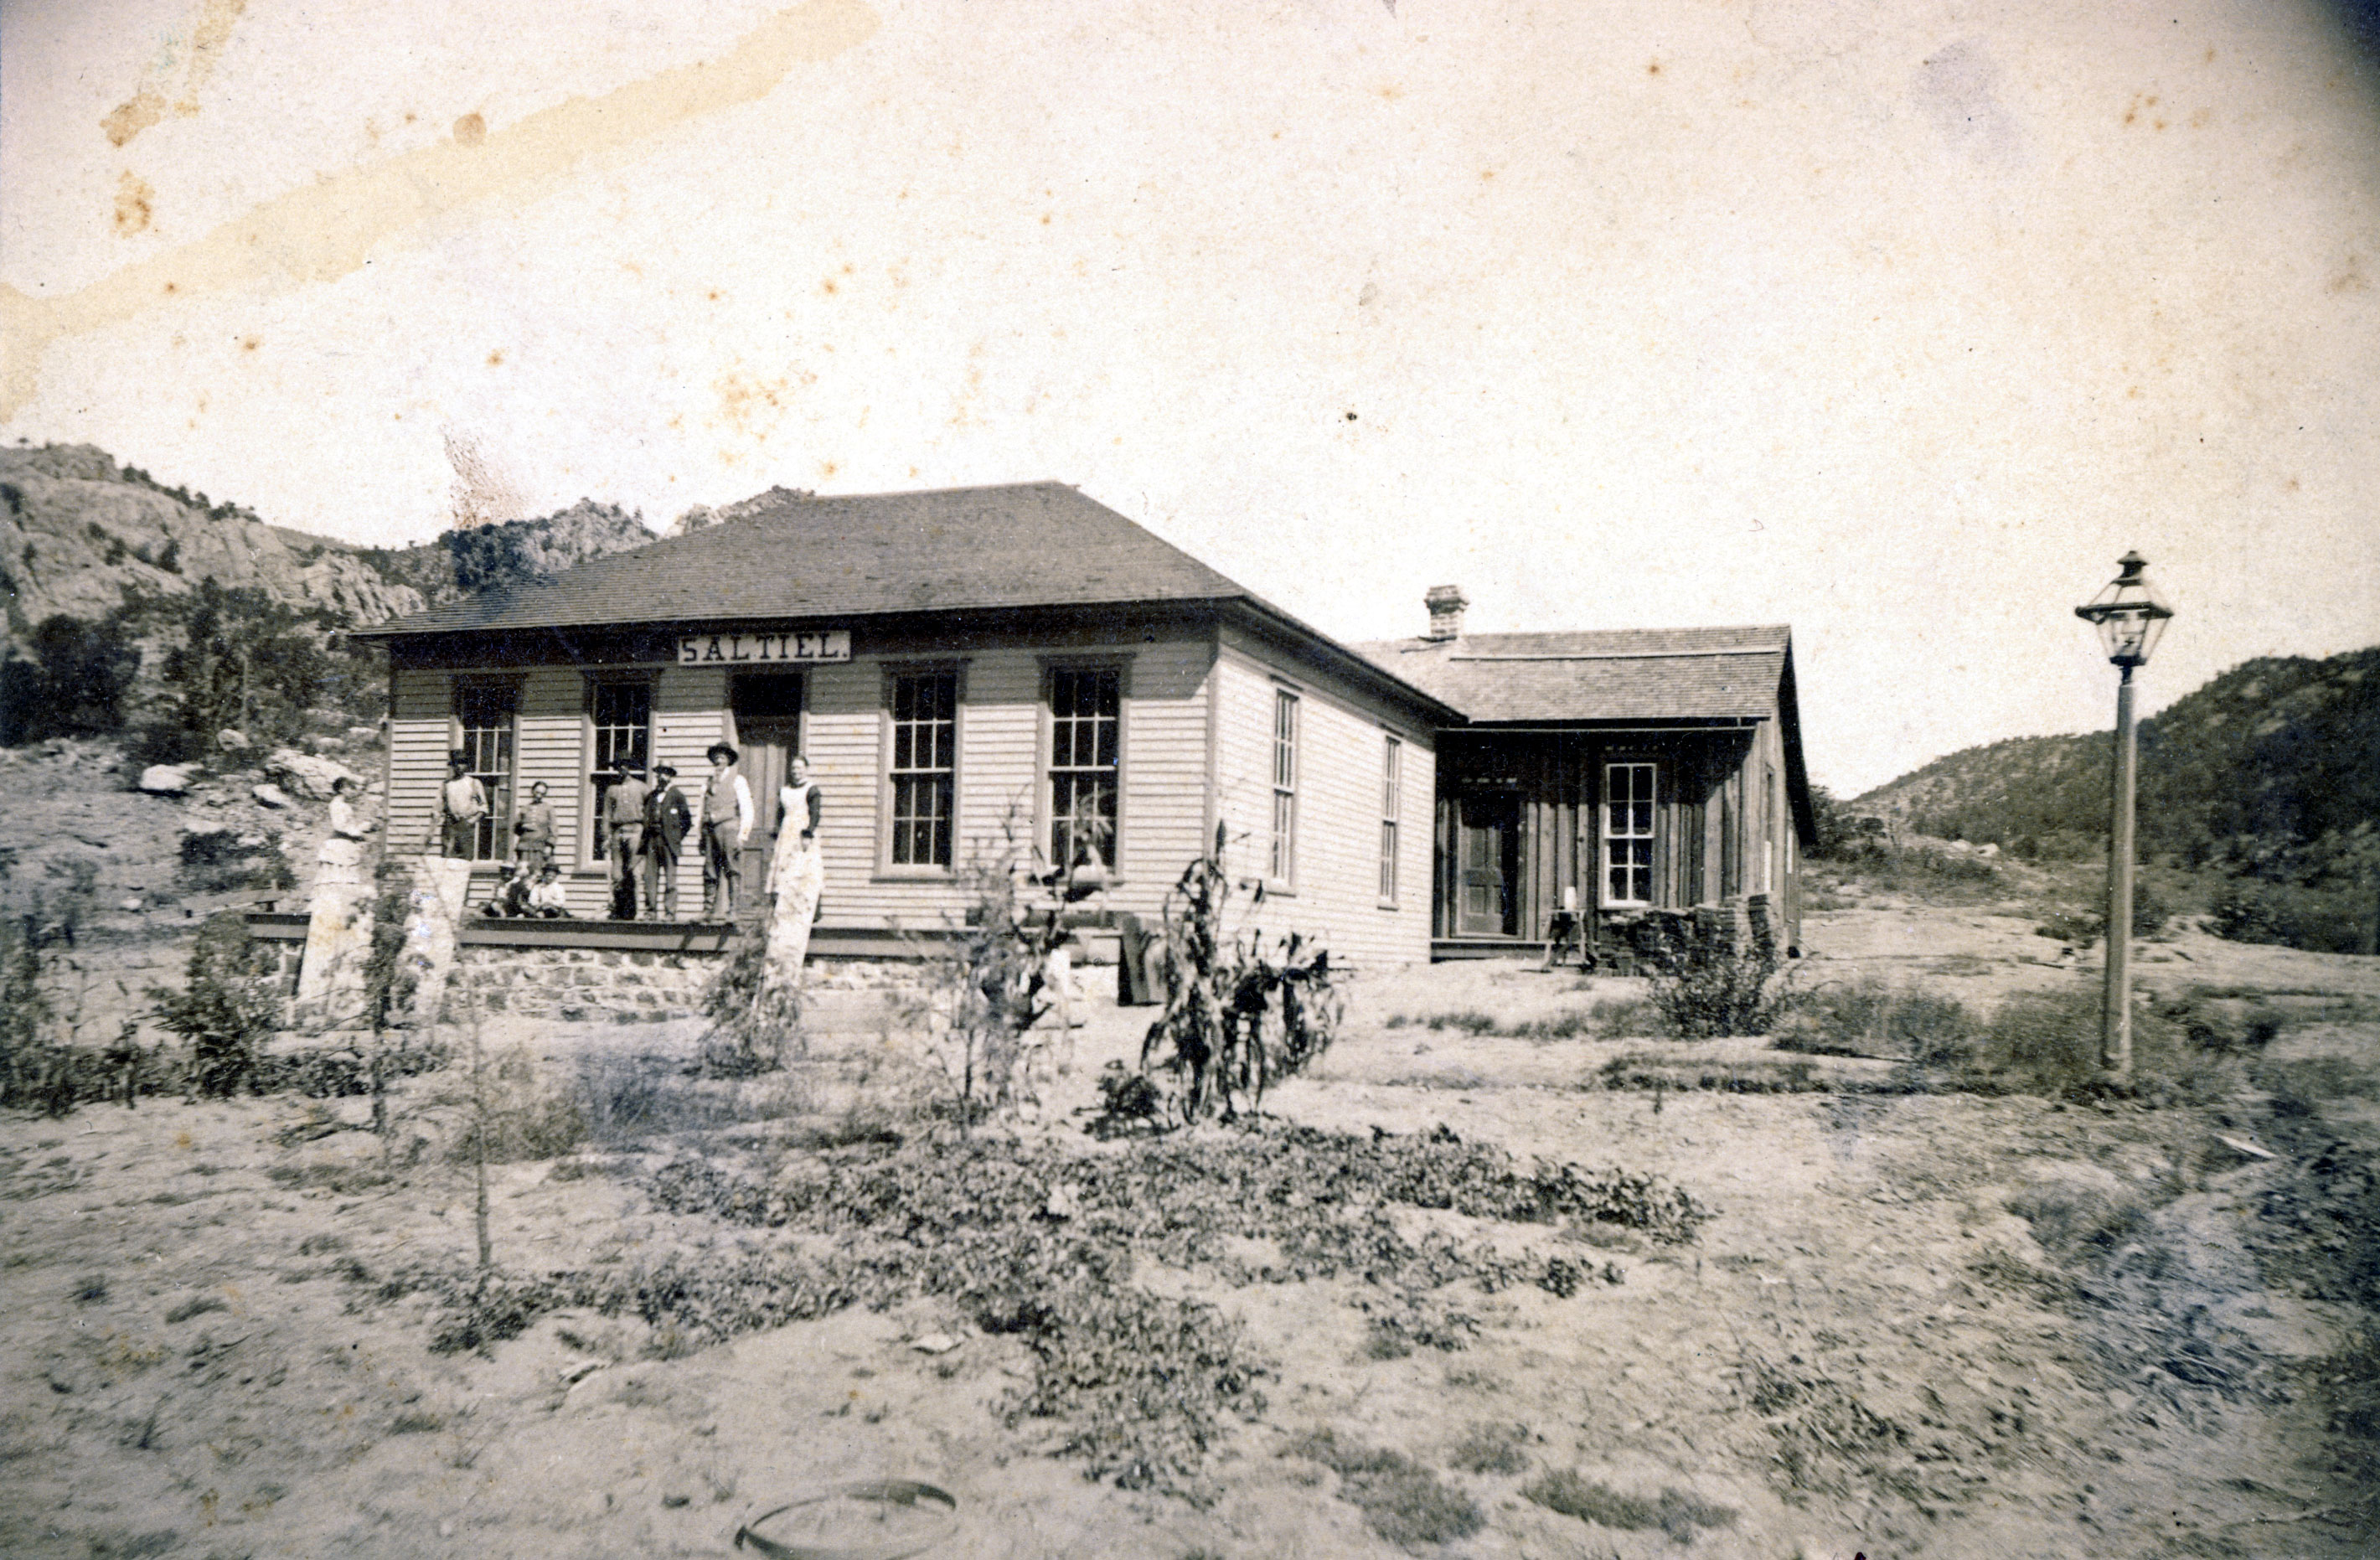 Saltiel's Store, an early Jewish store on the frontier.